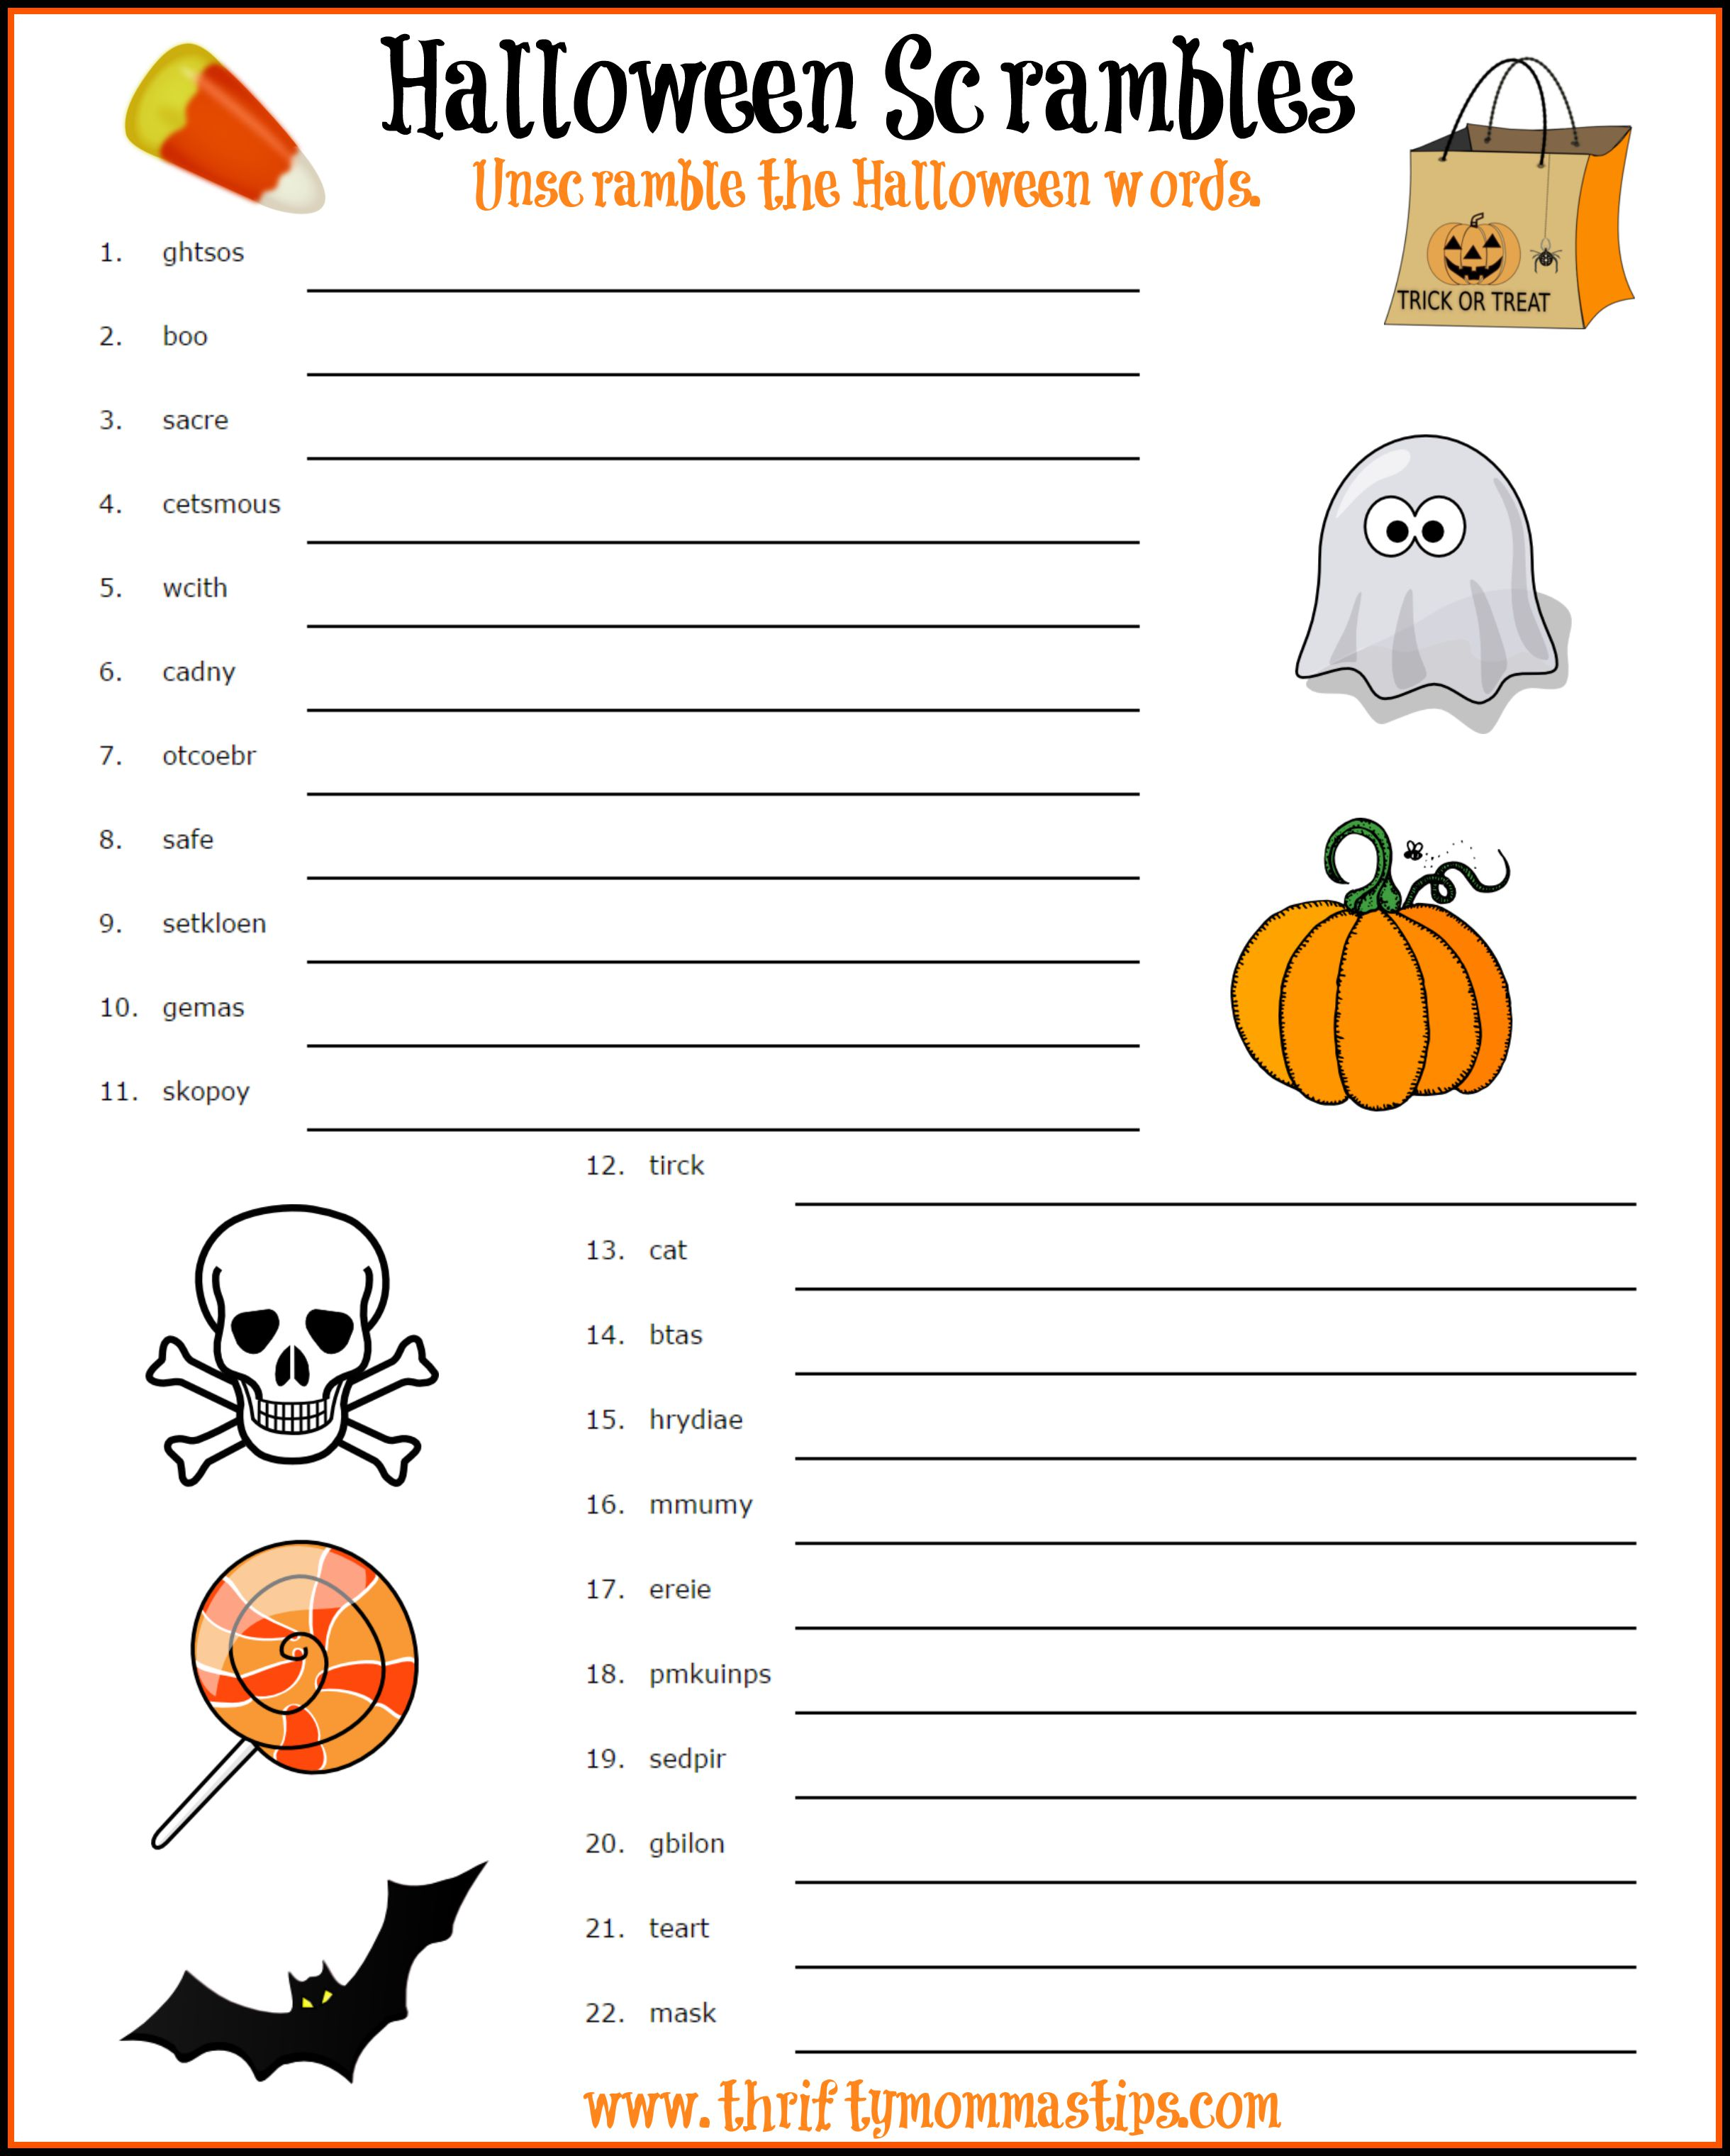 Fun Halloween Word Scramble